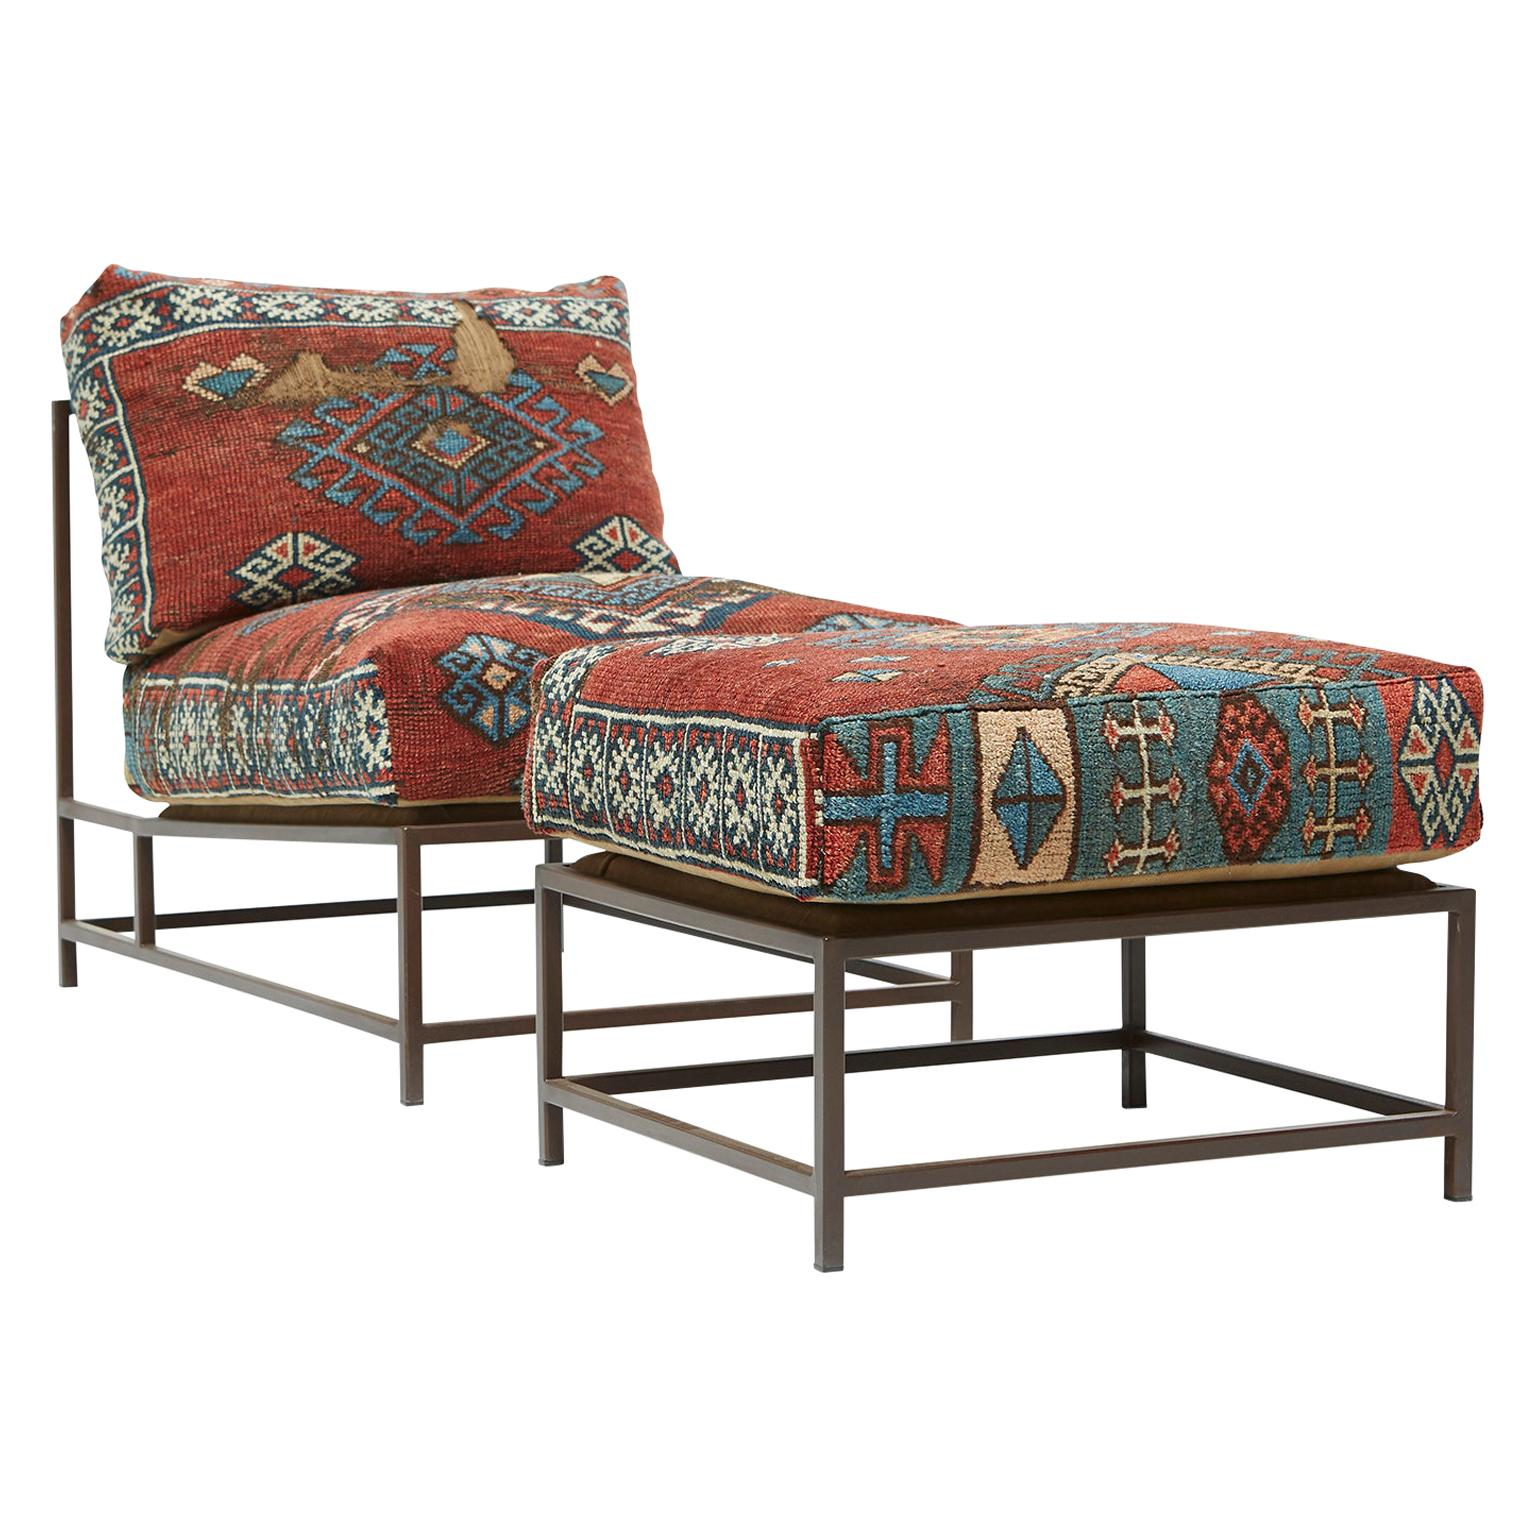 Chair and Ottoman Set with Antique Rug Upholstery